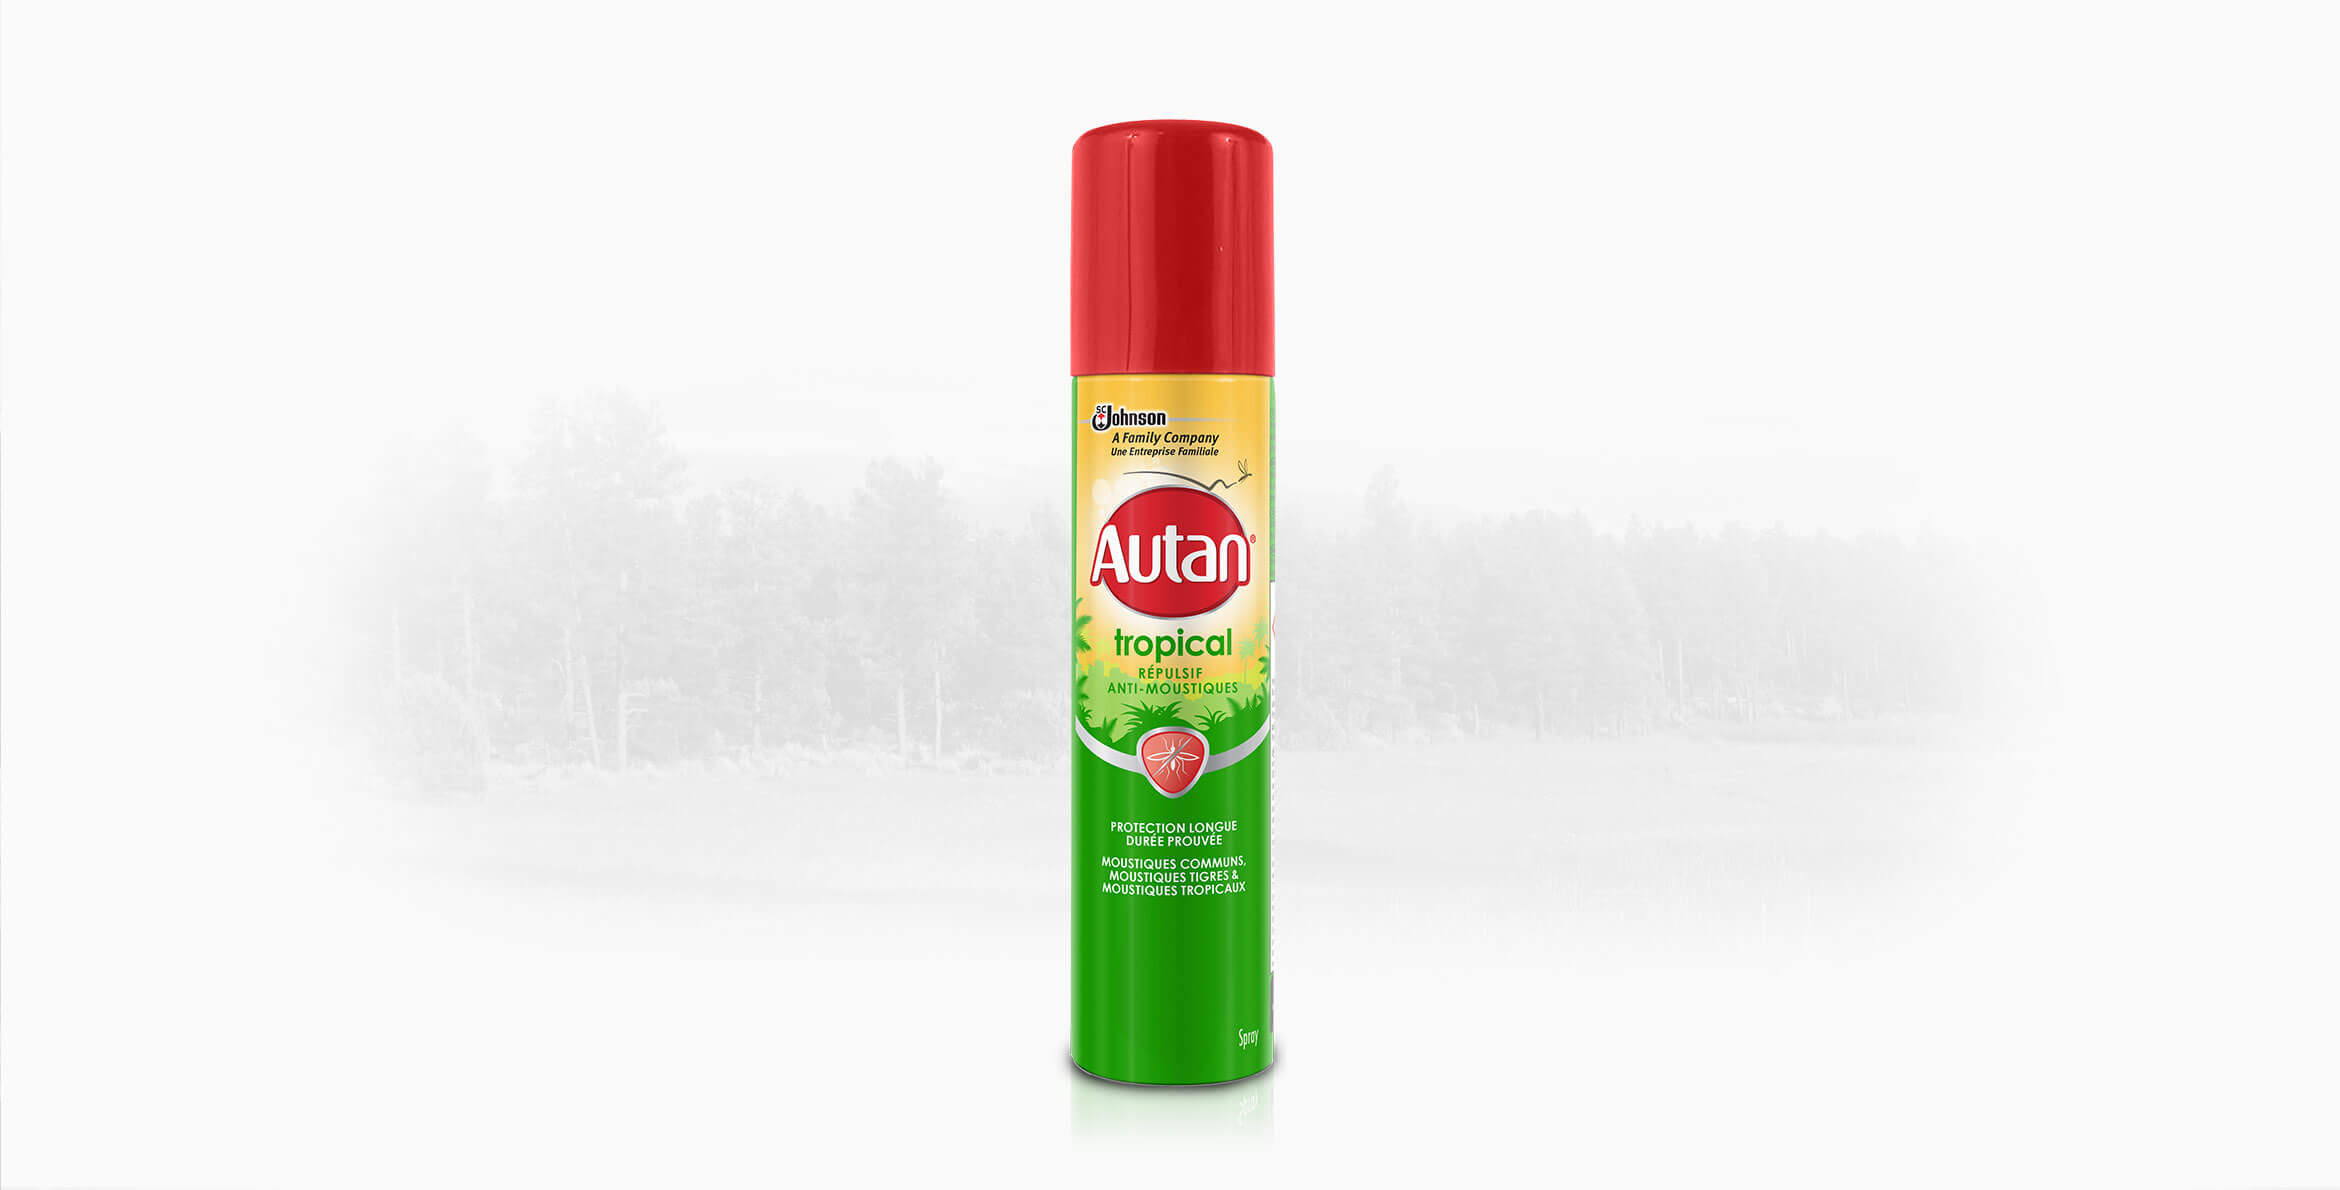 Autan® Tropical Spray